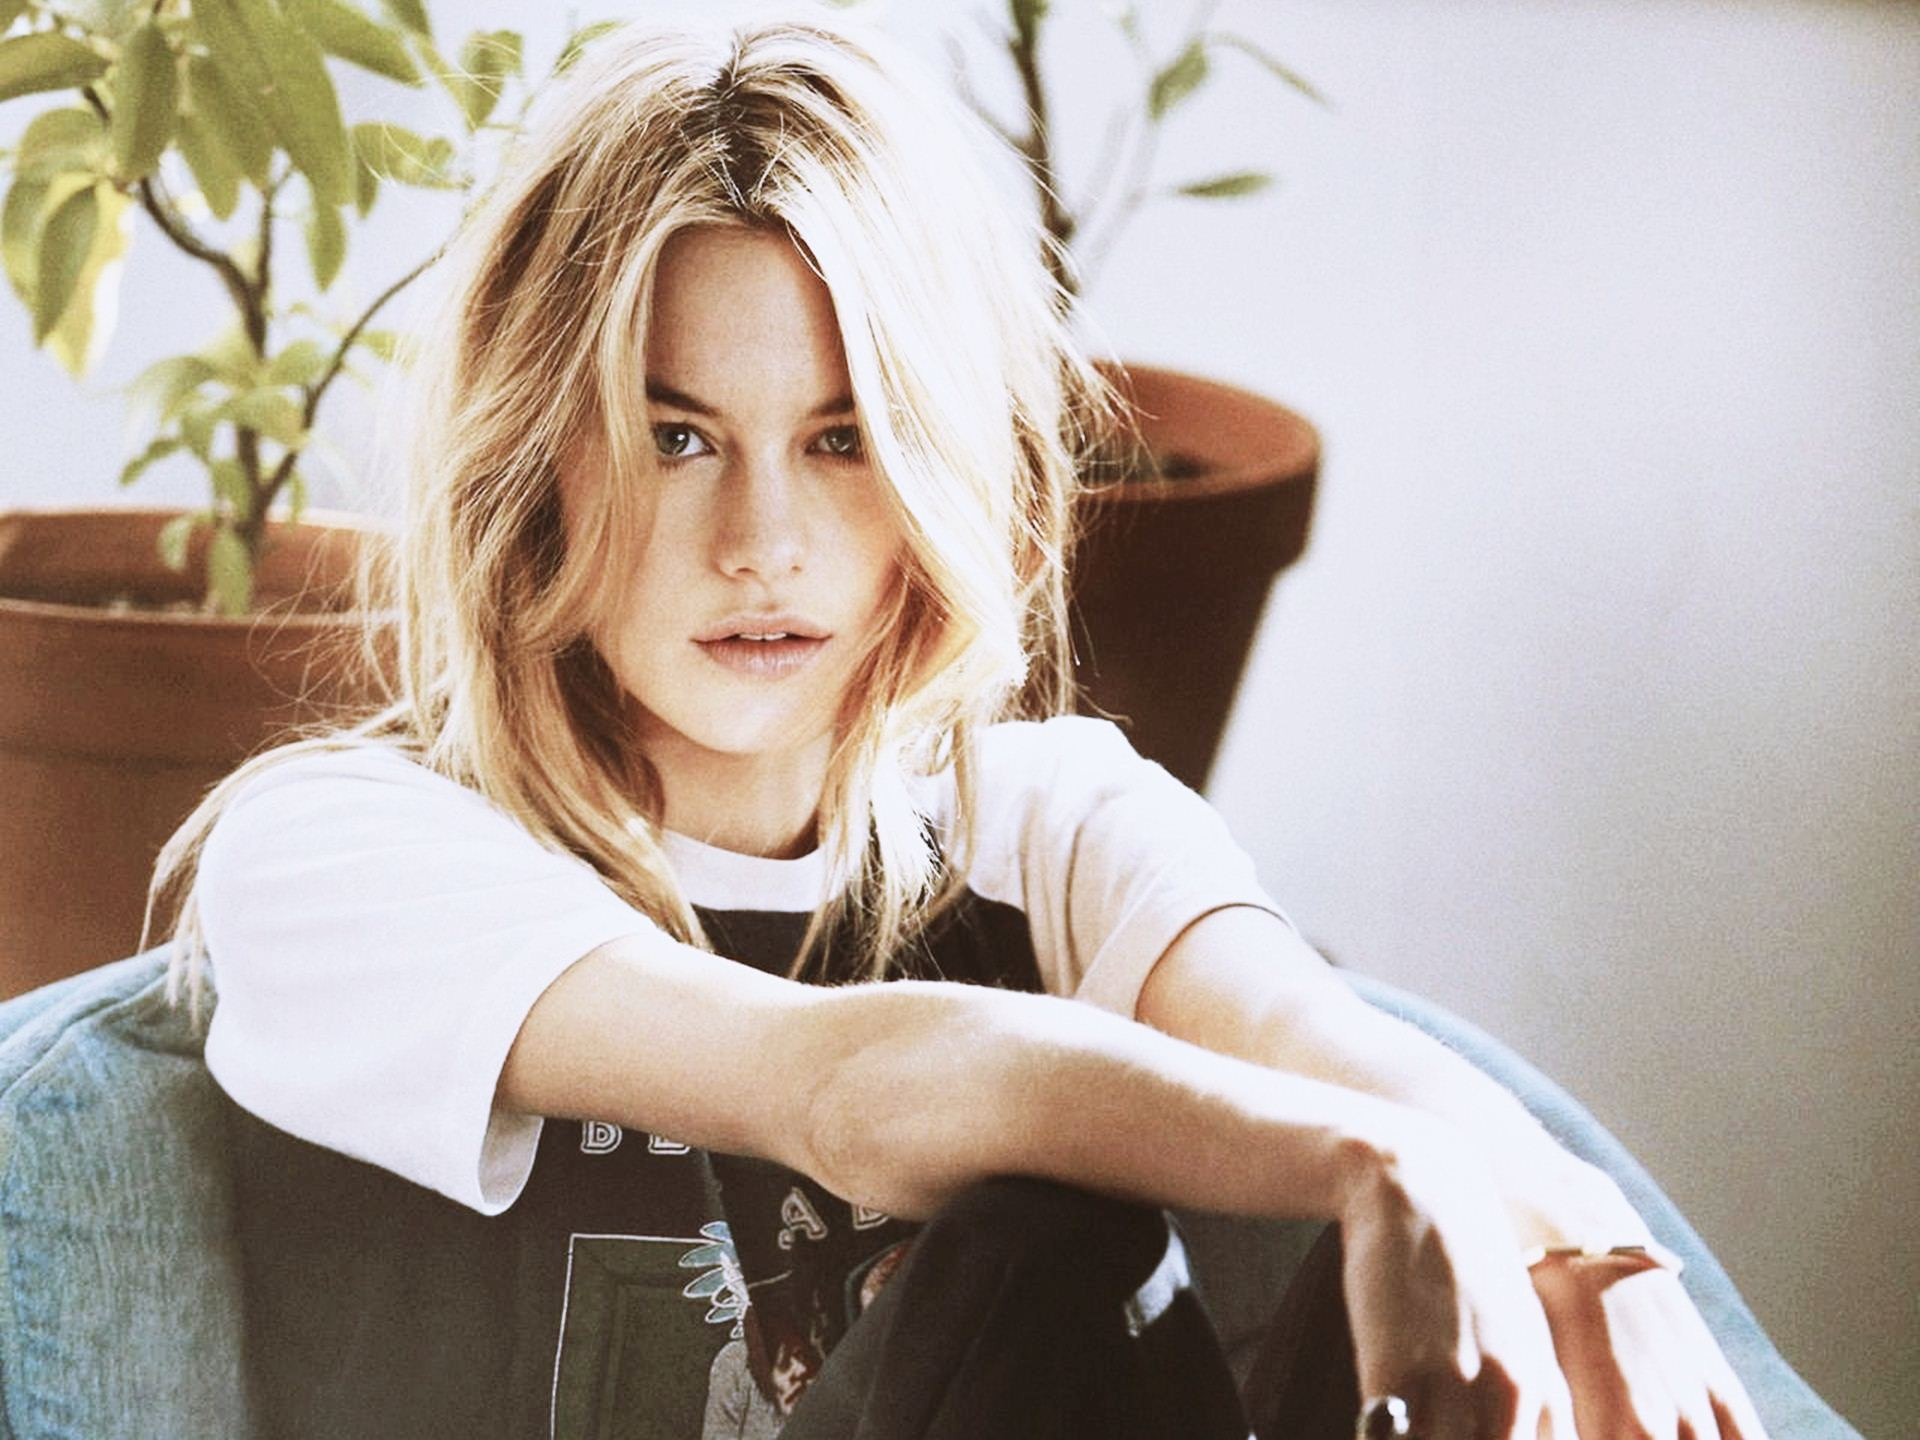 Camille Rowe High Definition Wallpapers